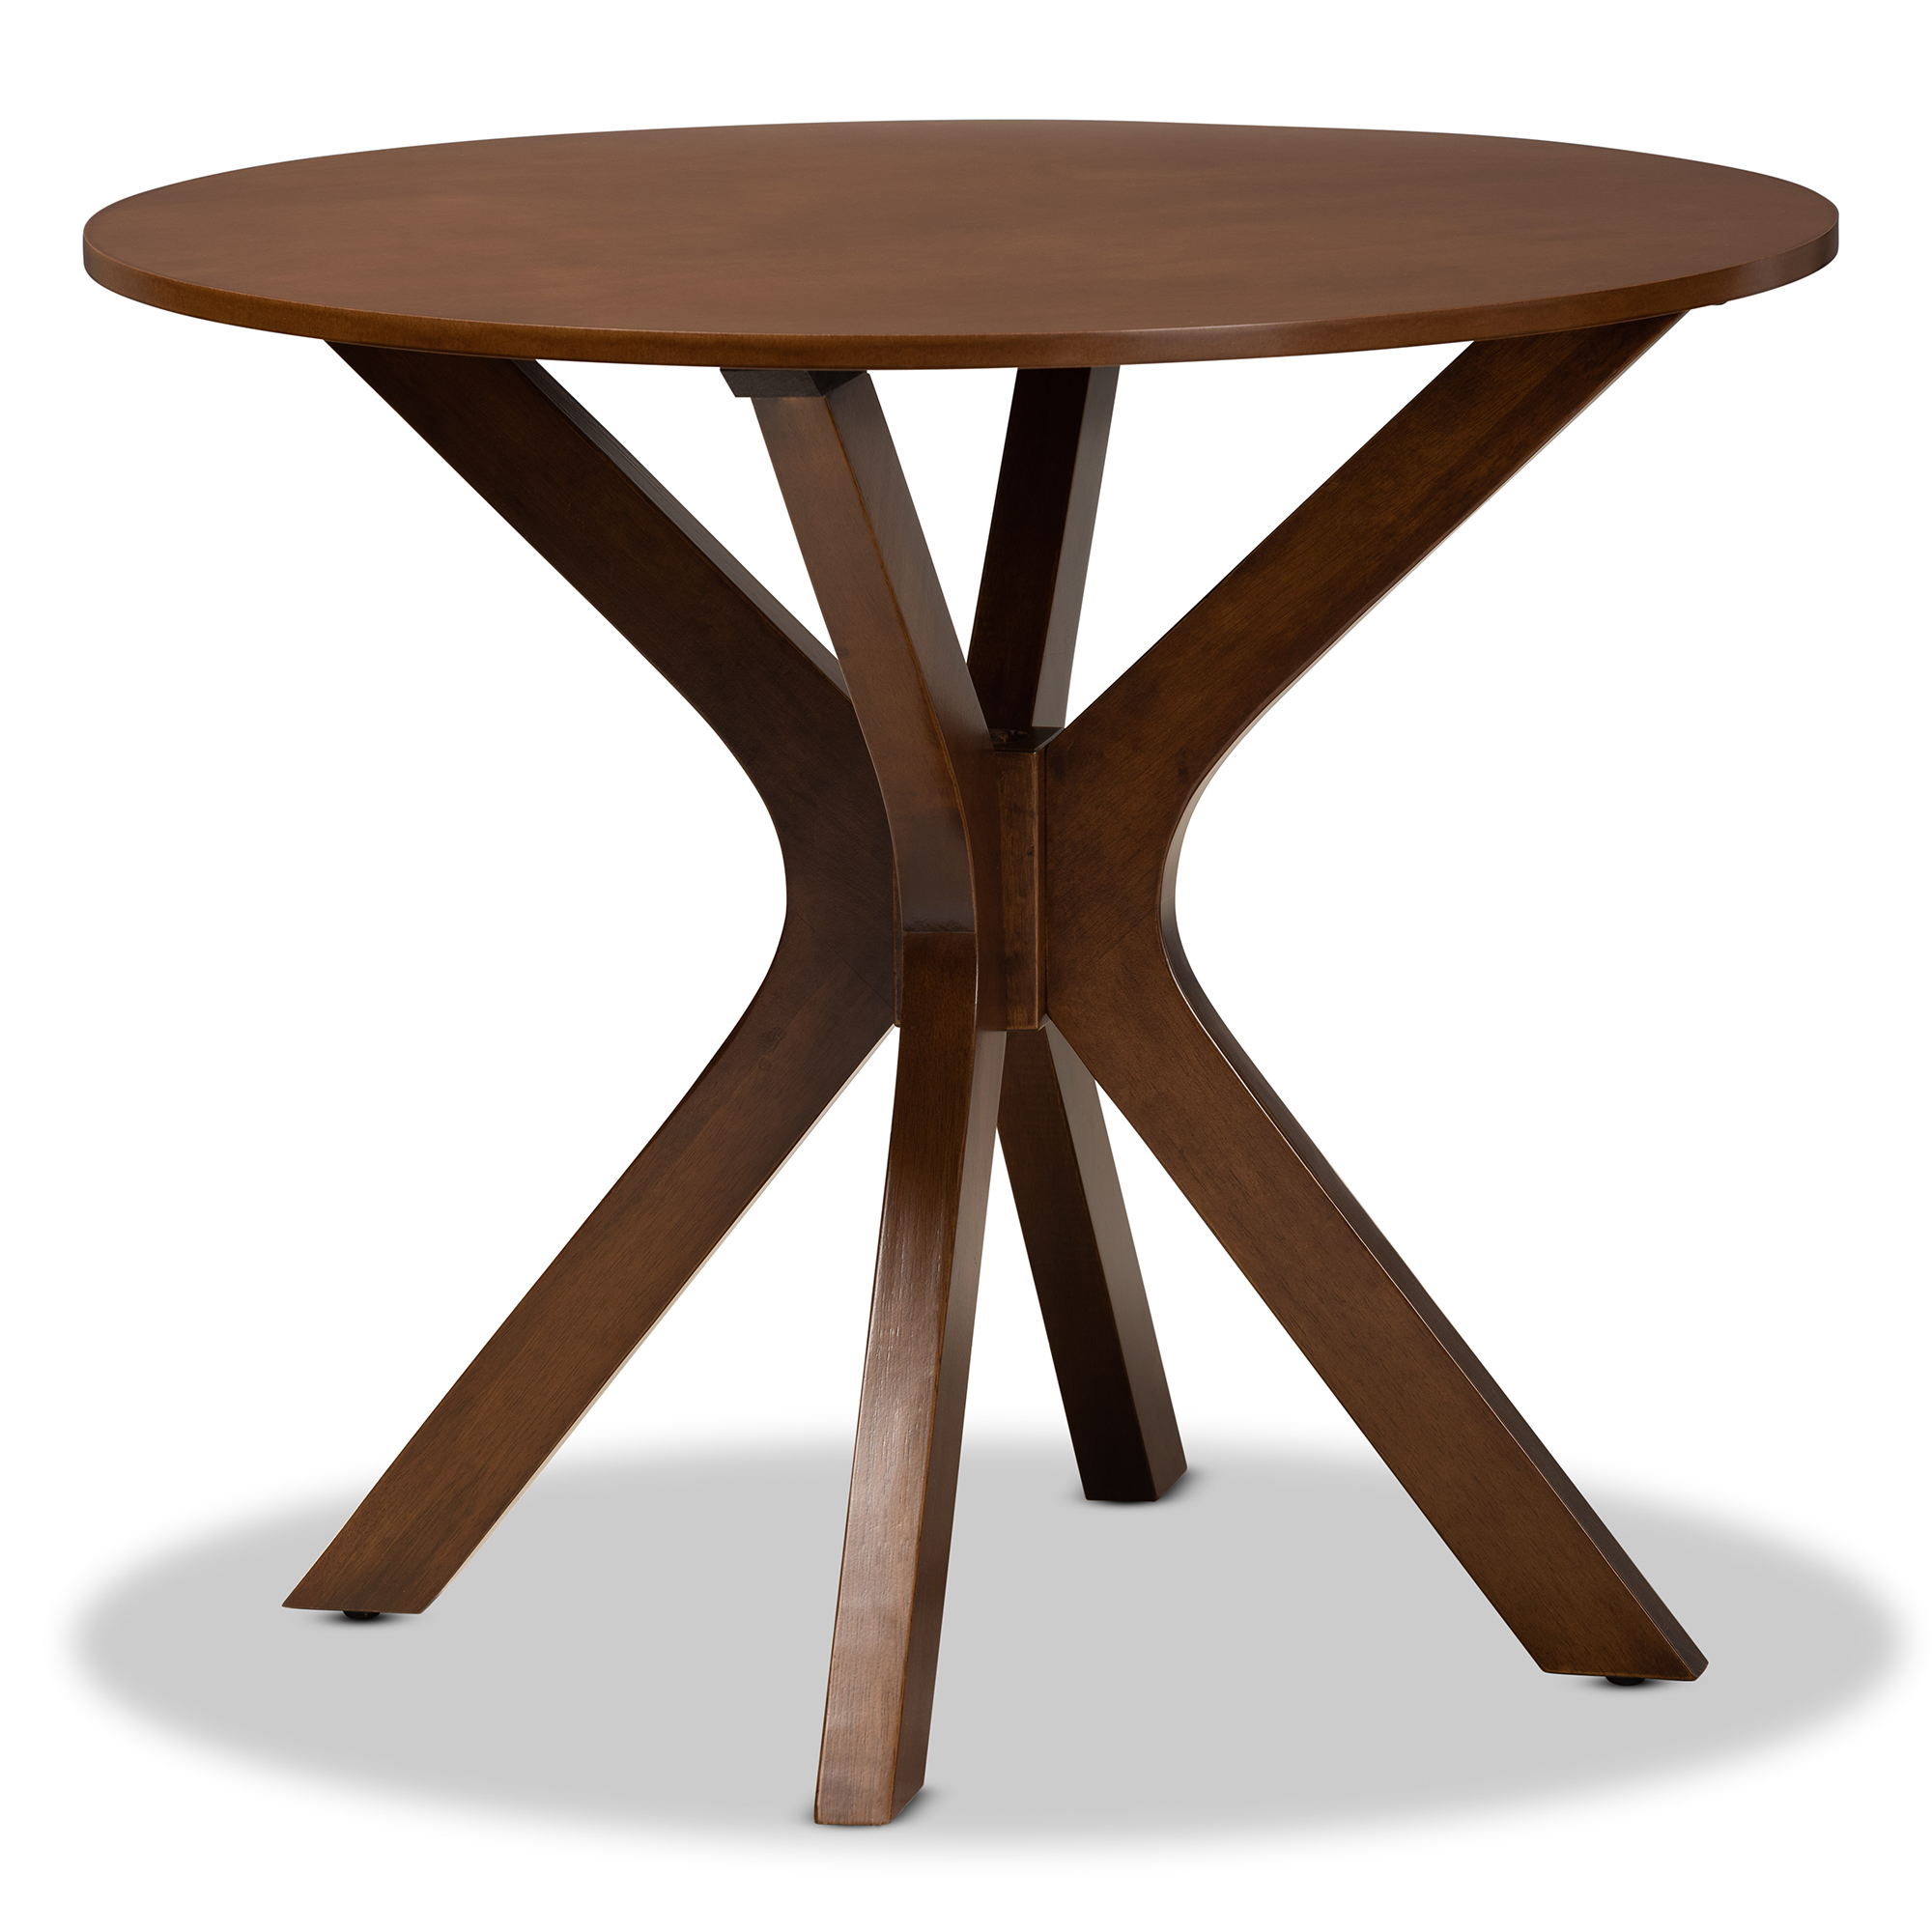 Baxton Studio Kenji MDF Dining Table - Walnut